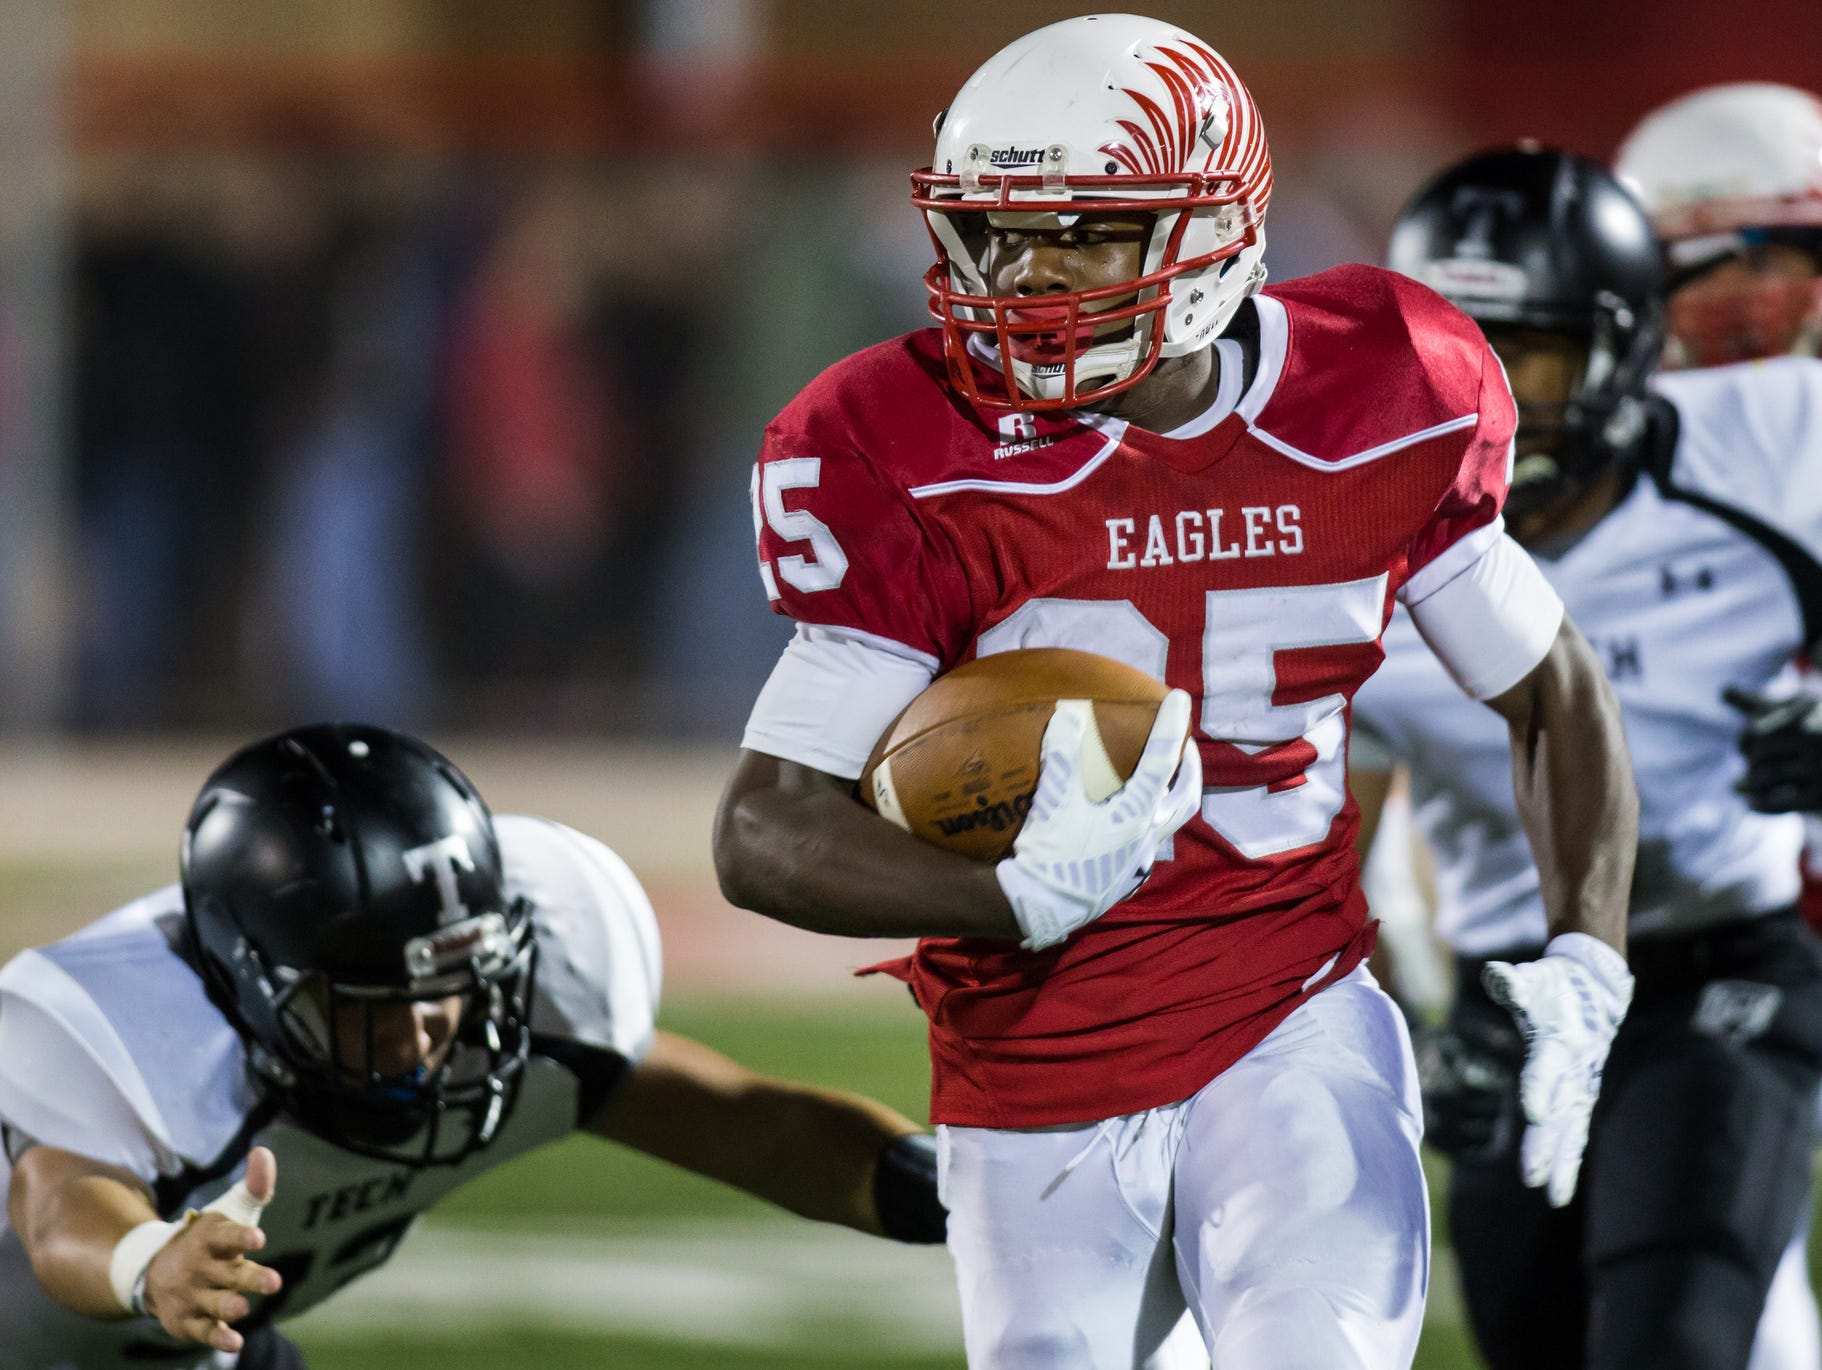 Smyrna running back William Knight, All-State as a sophomore last season, will be one of the keys for the Eagles against Salesianum on Friday.